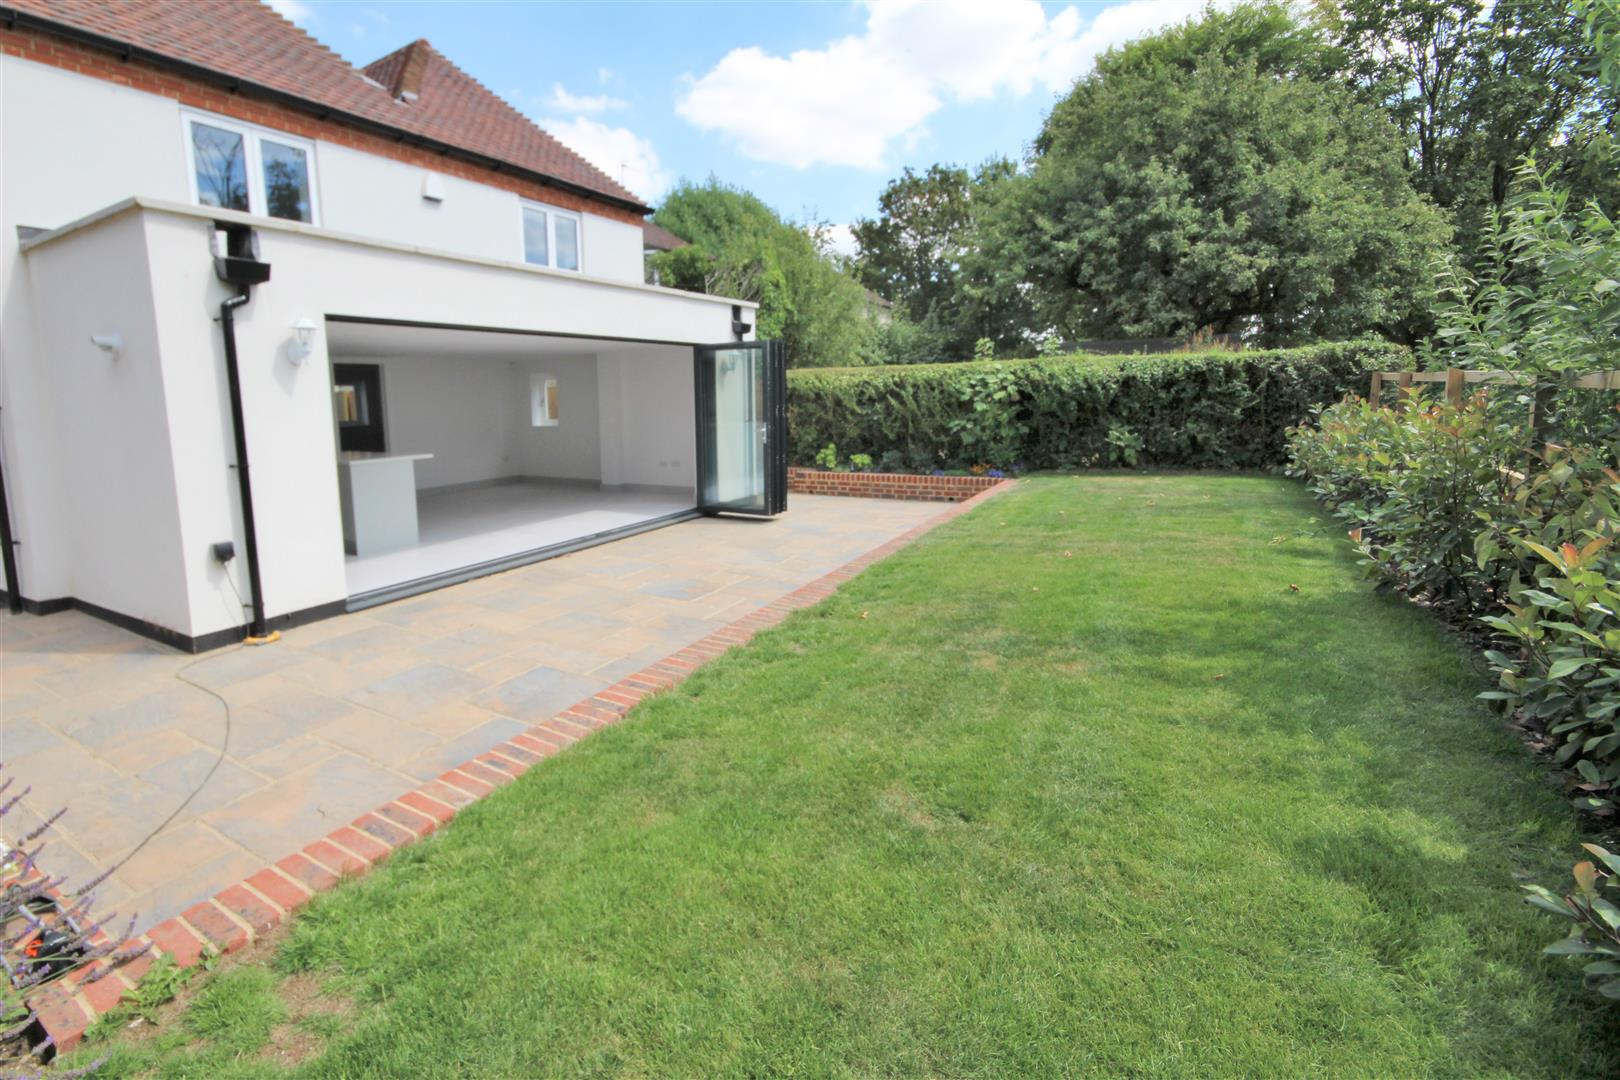 4 bed for sale in London Road, Shenley - (Property Image 4)